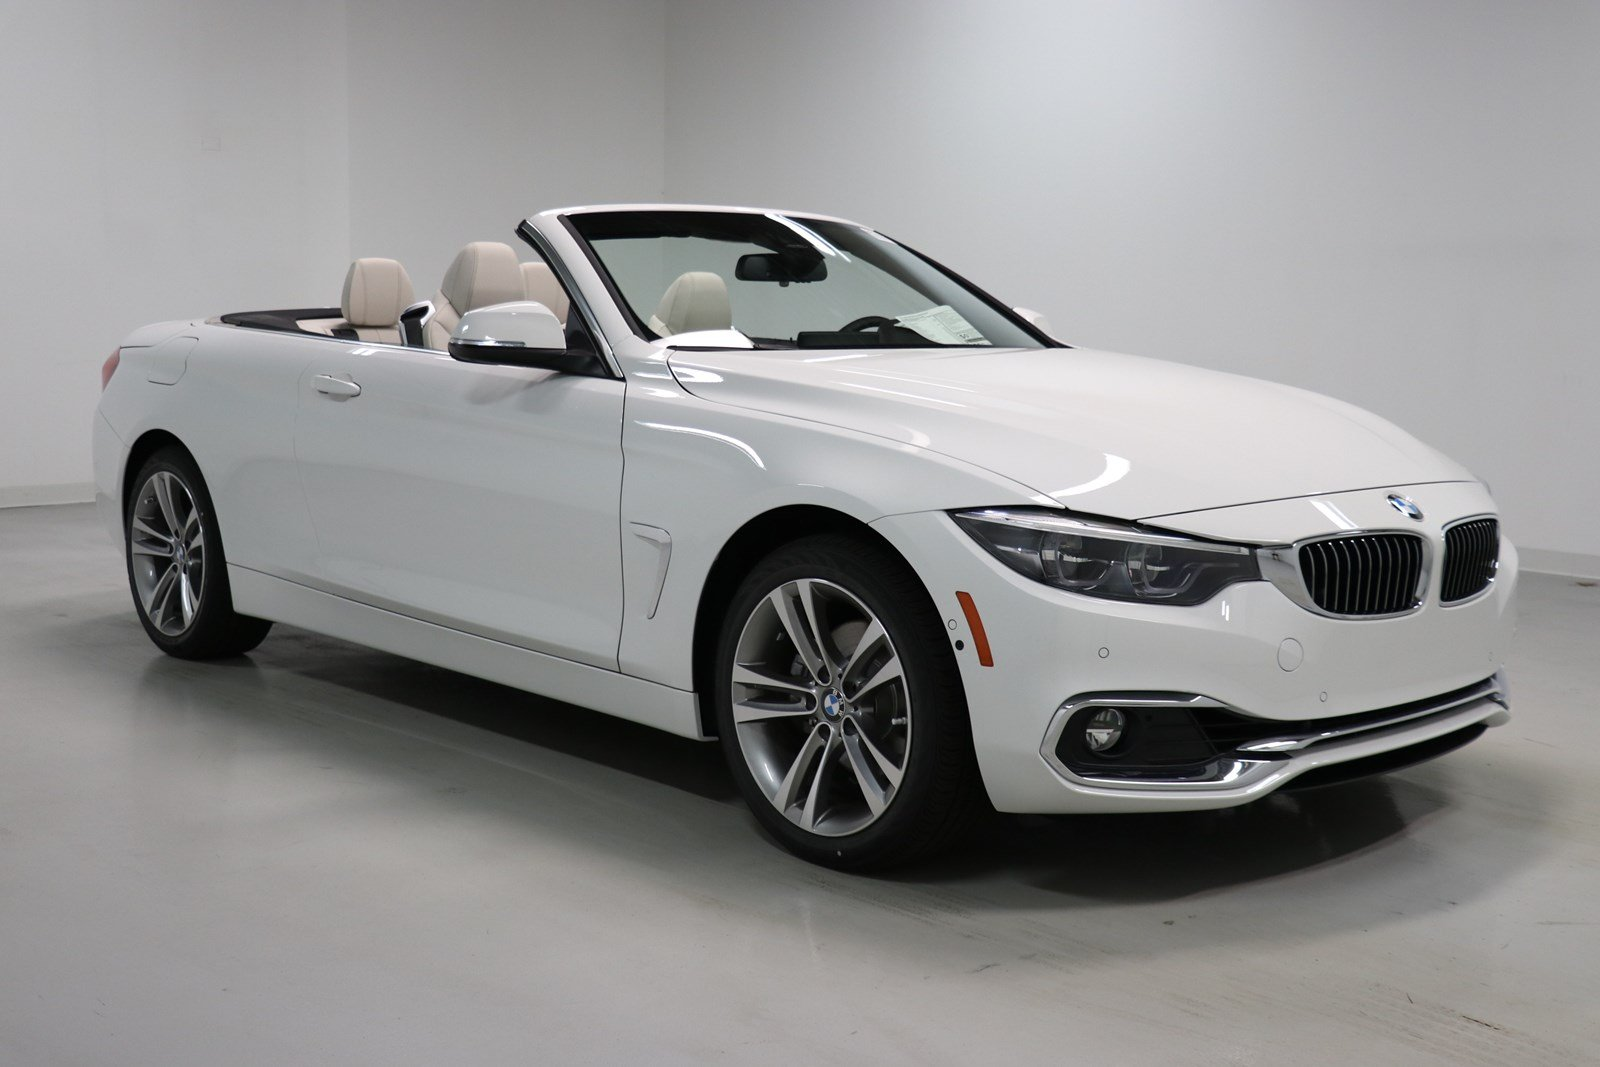 pre owned 2019 bmw 4 series 430i xdrive convertible convertible in elmhurst b8343 elmhurst bmw. Black Bedroom Furniture Sets. Home Design Ideas